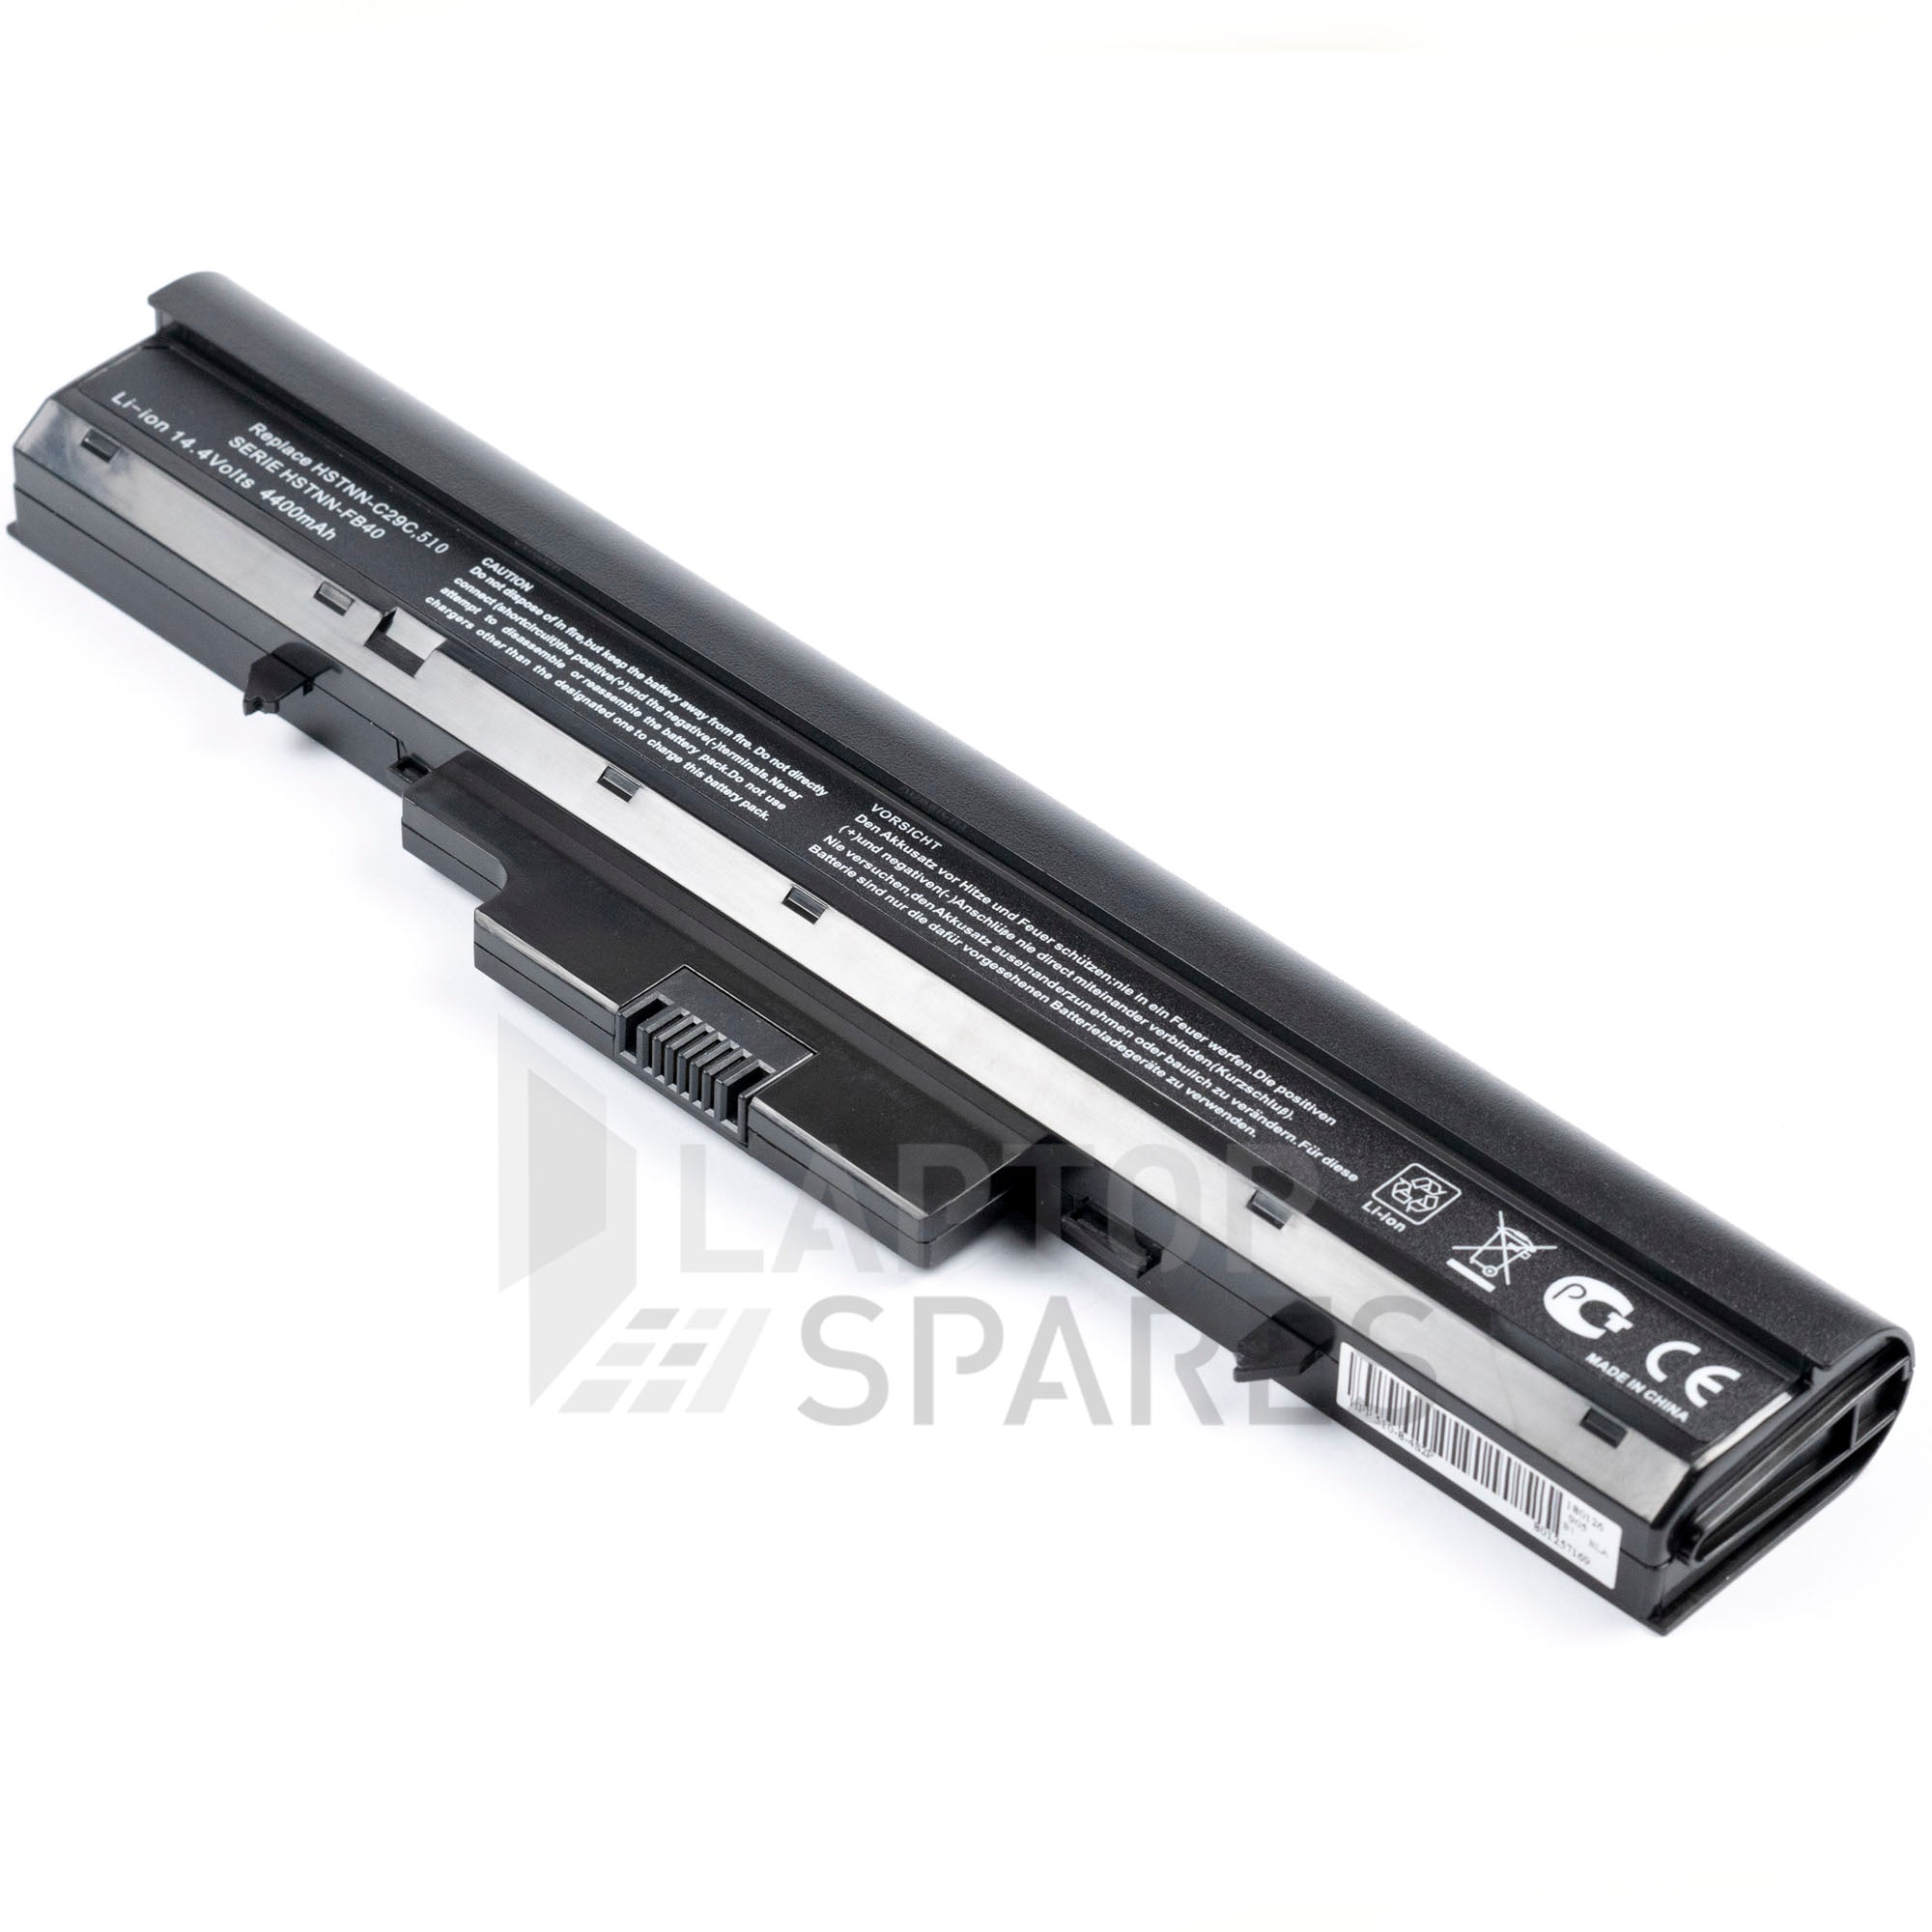 HP Compaq 510 4400mAh 6 Cell Battery